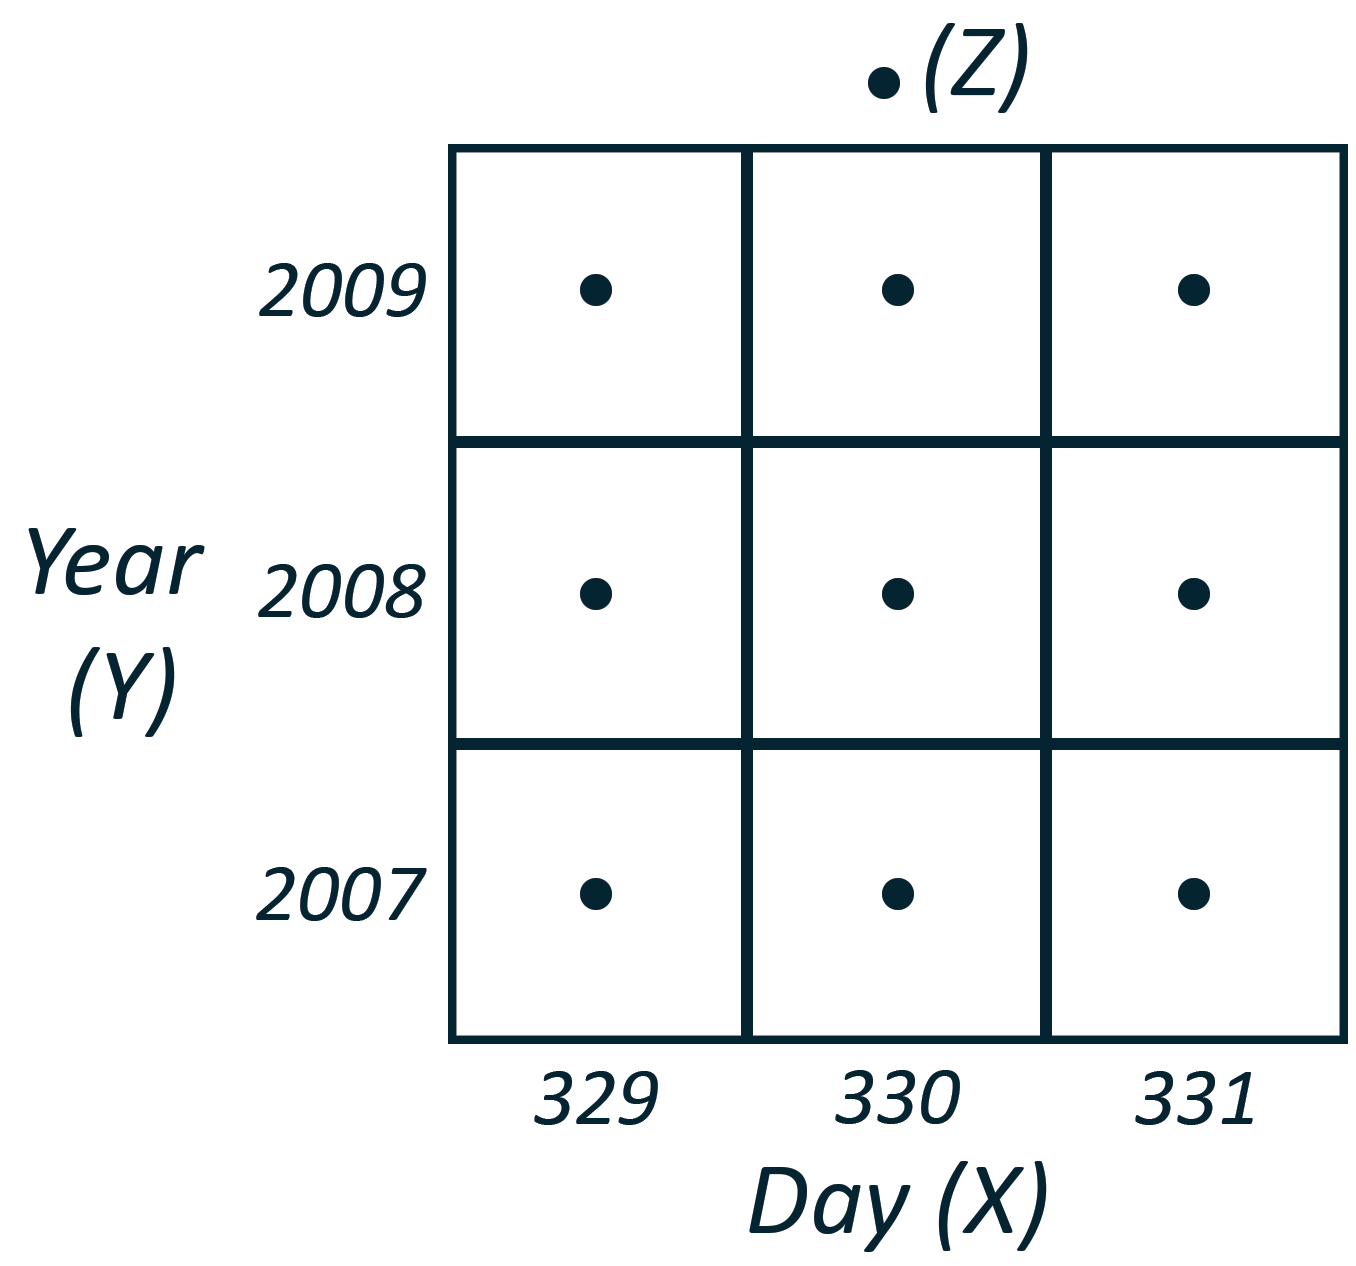 Grid format to create temporal coordinates for visualization in the 2D & 3D modeling and analysis software program, Surfer